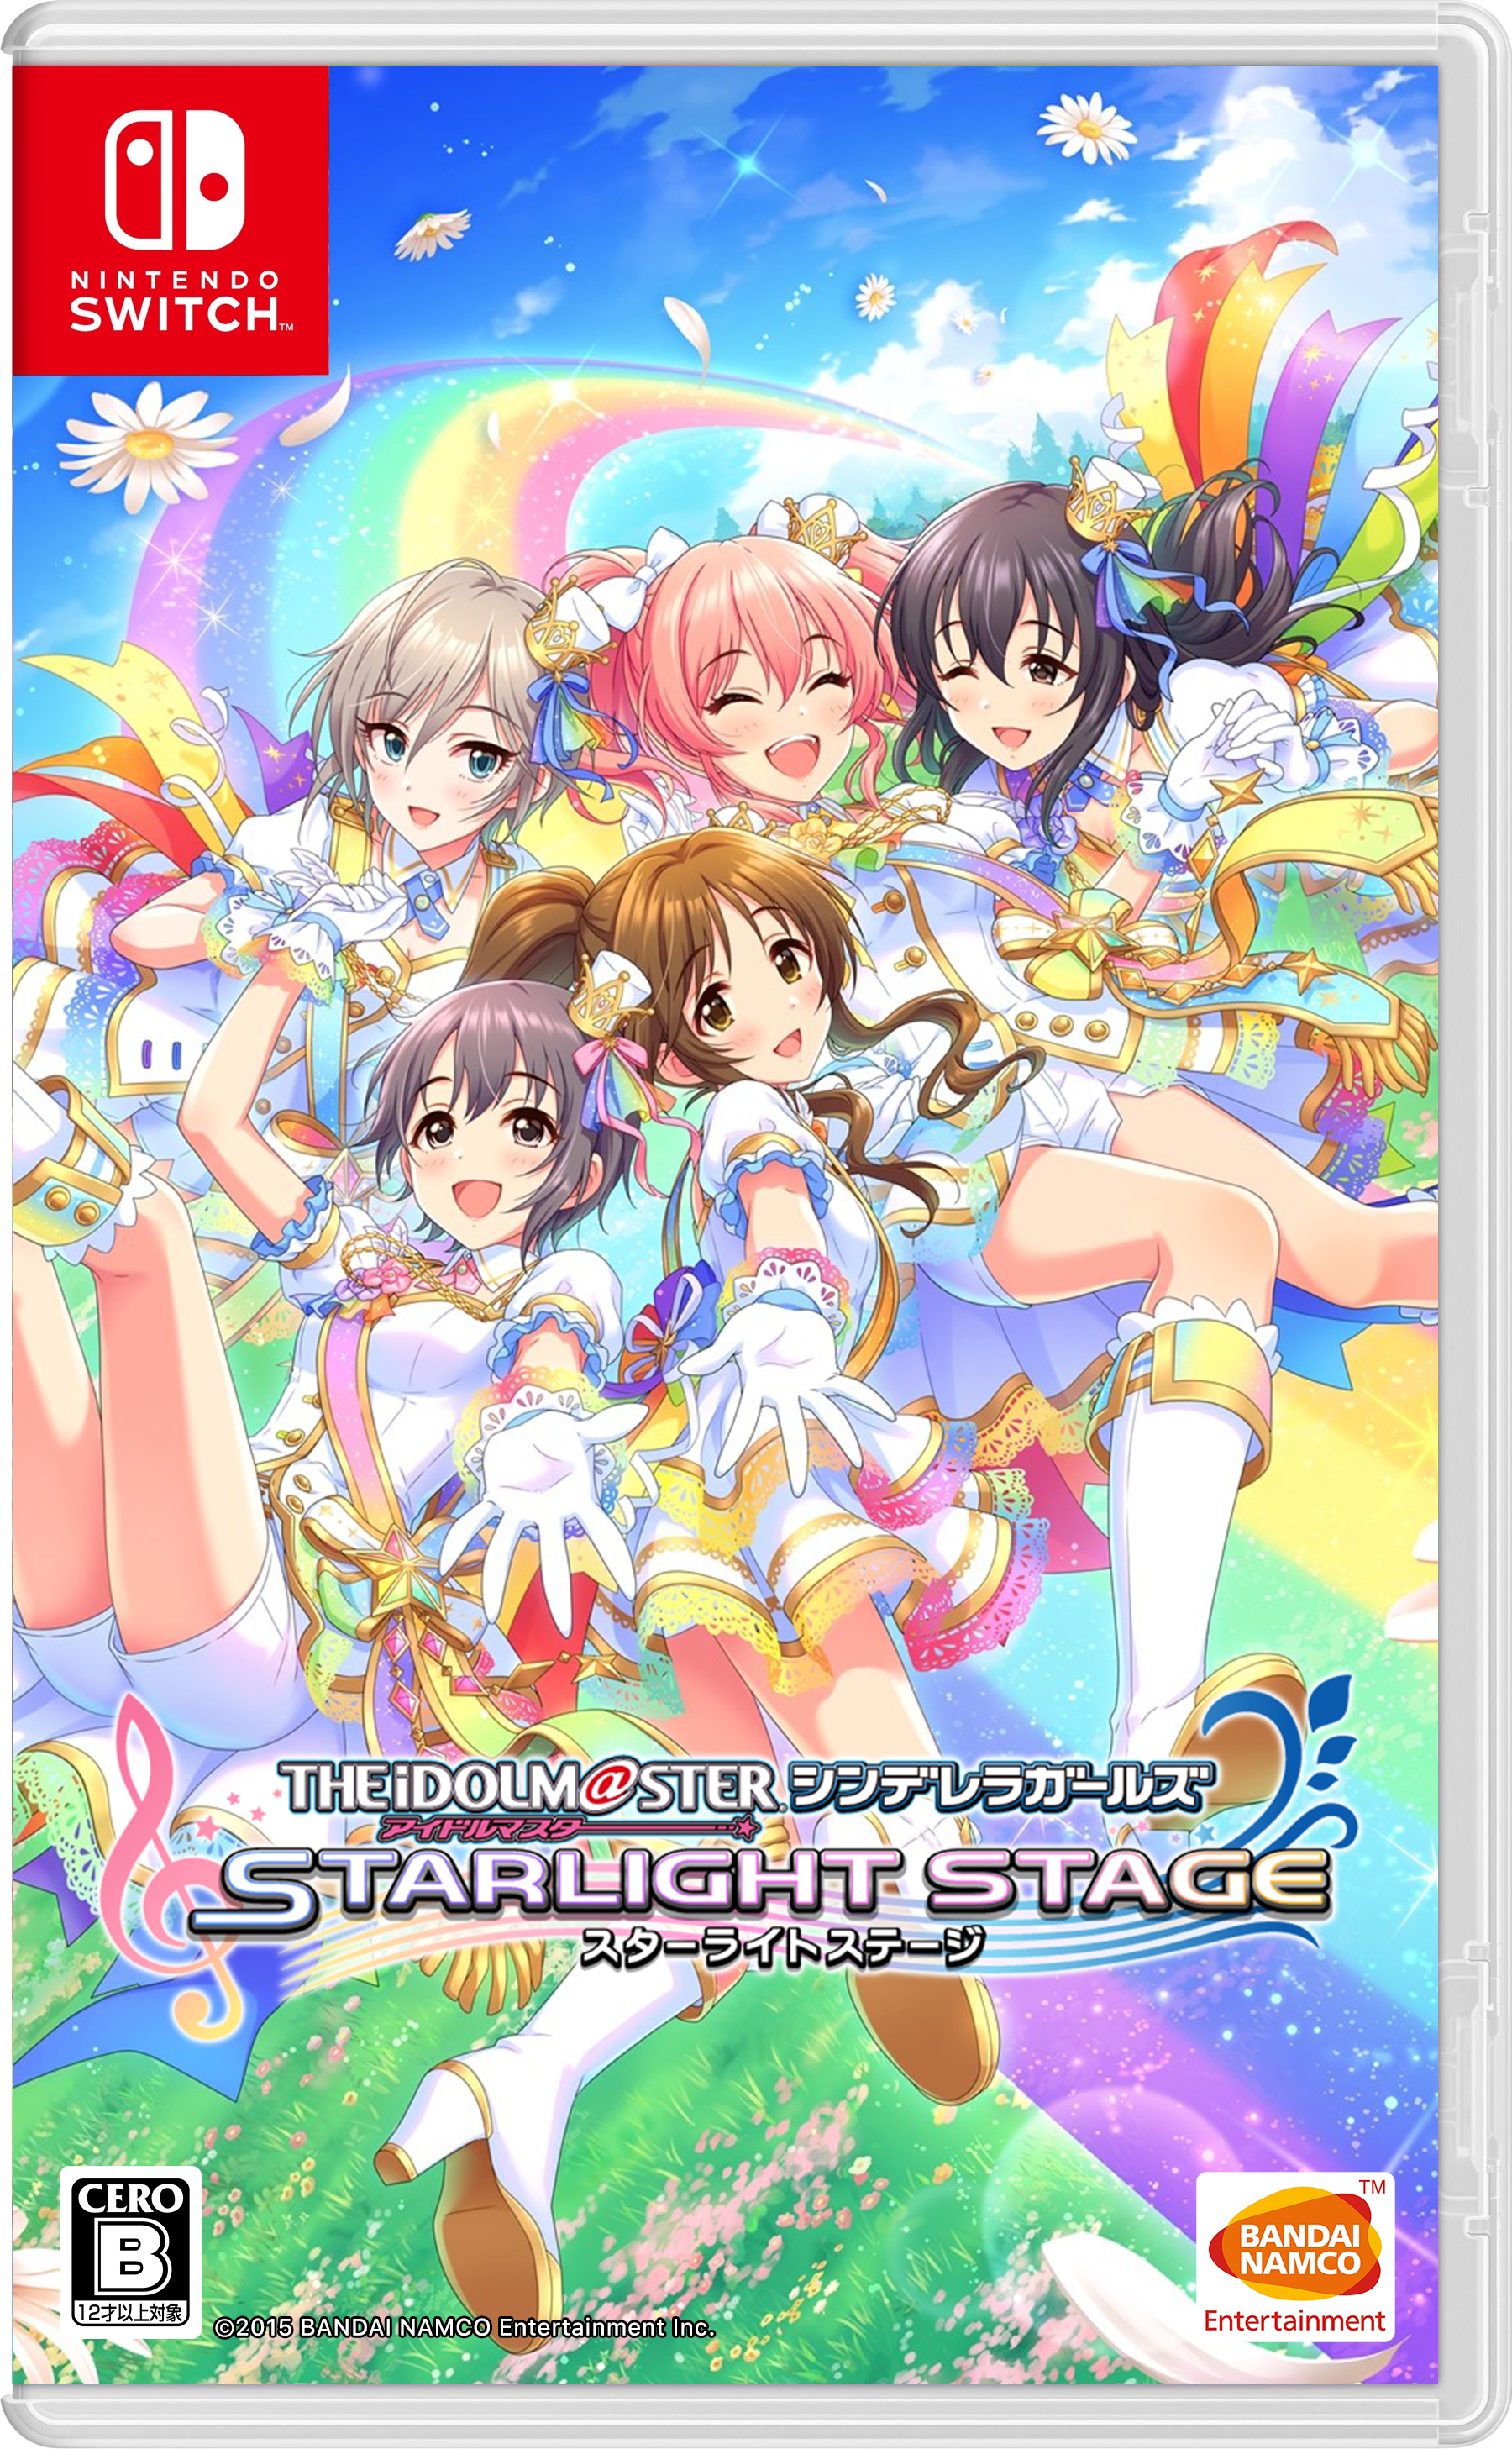 The Idolmaster box cover